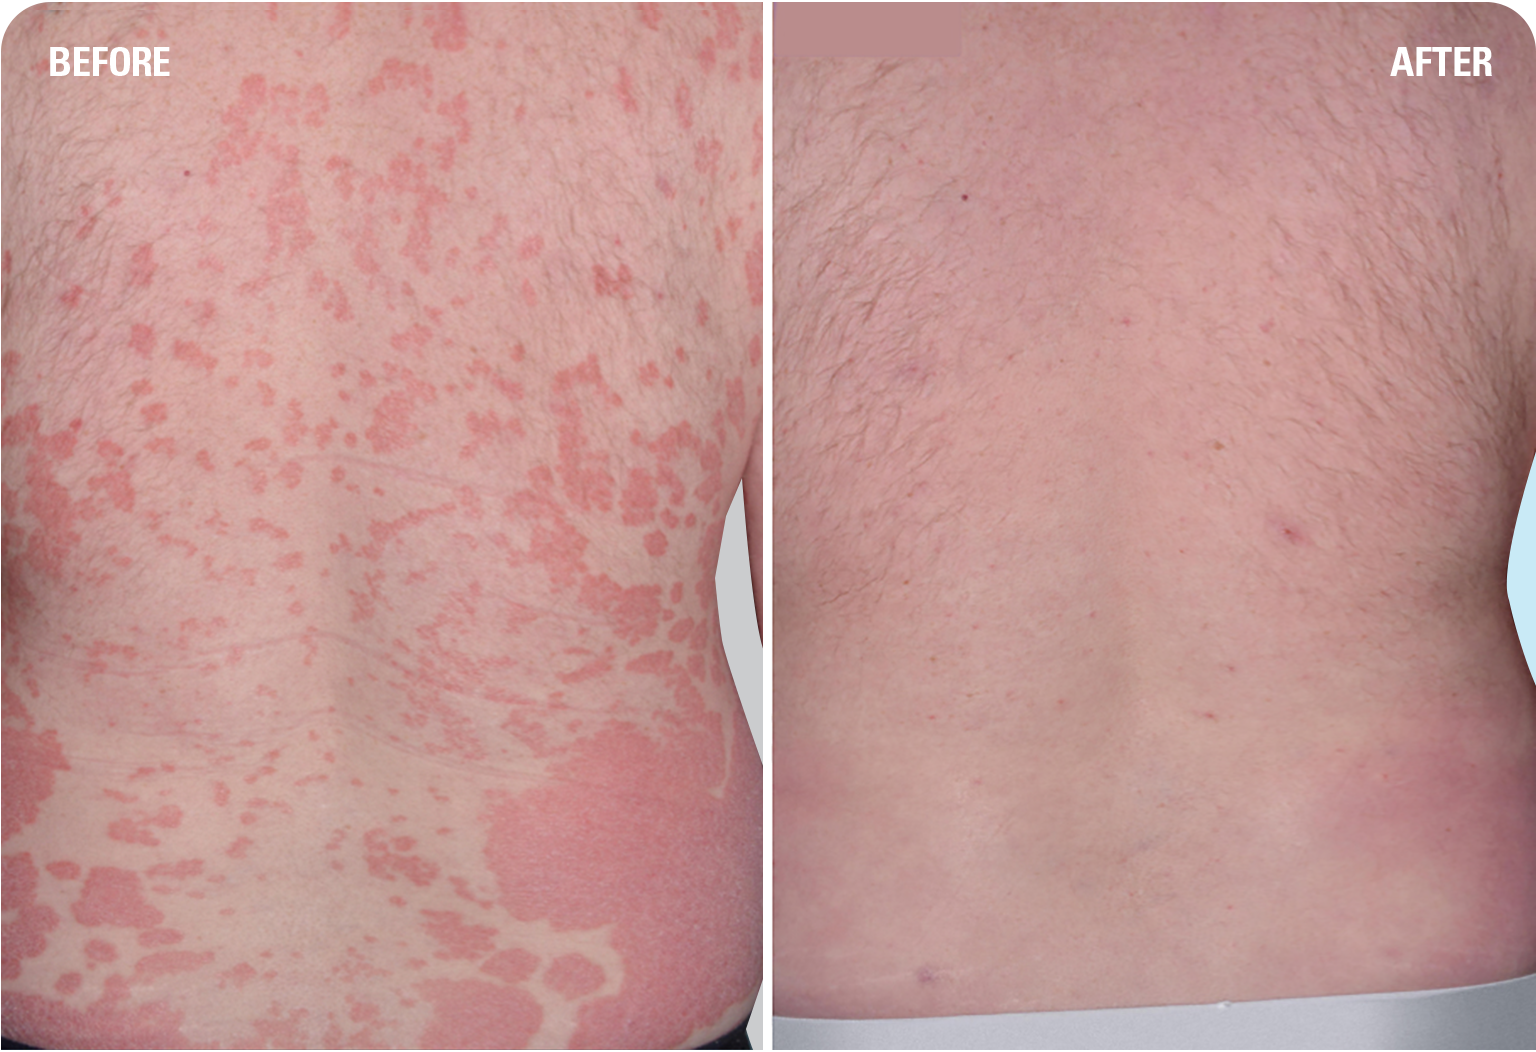 SKYRIZI before and after: one patient's experience with plaque psoriasis clearing back